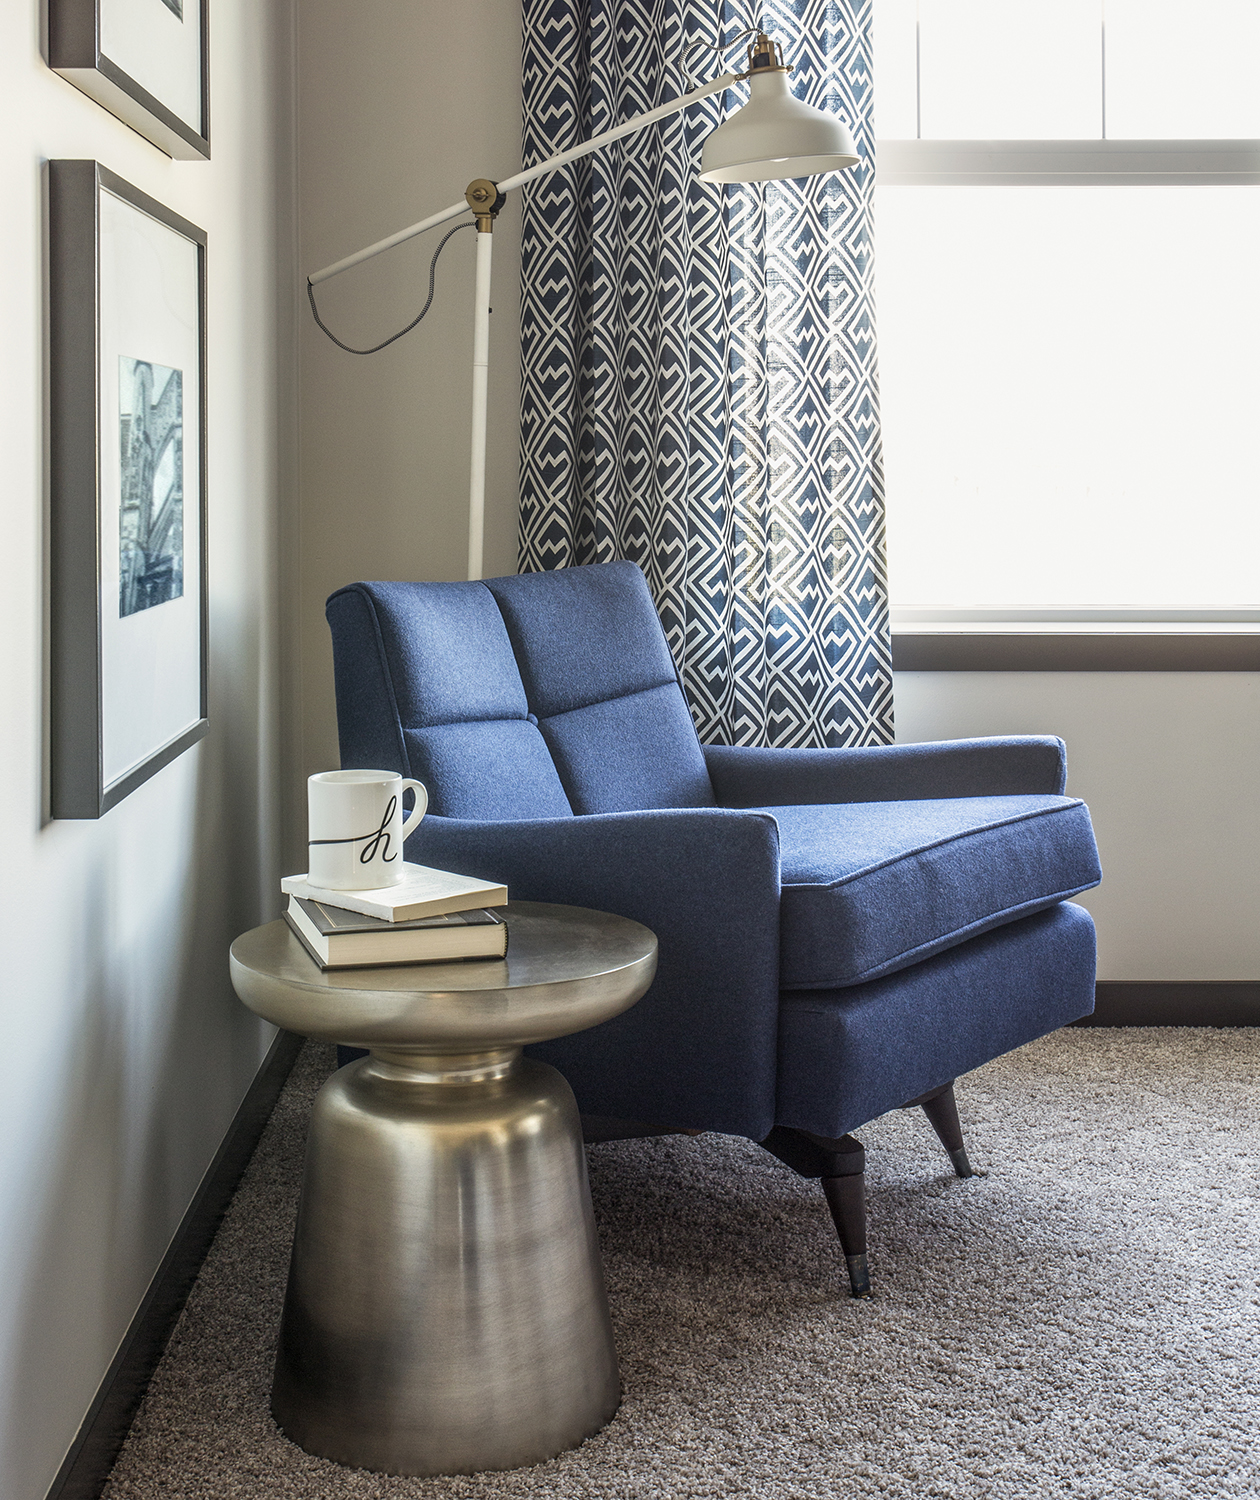 Blue armchair and lamp in corner